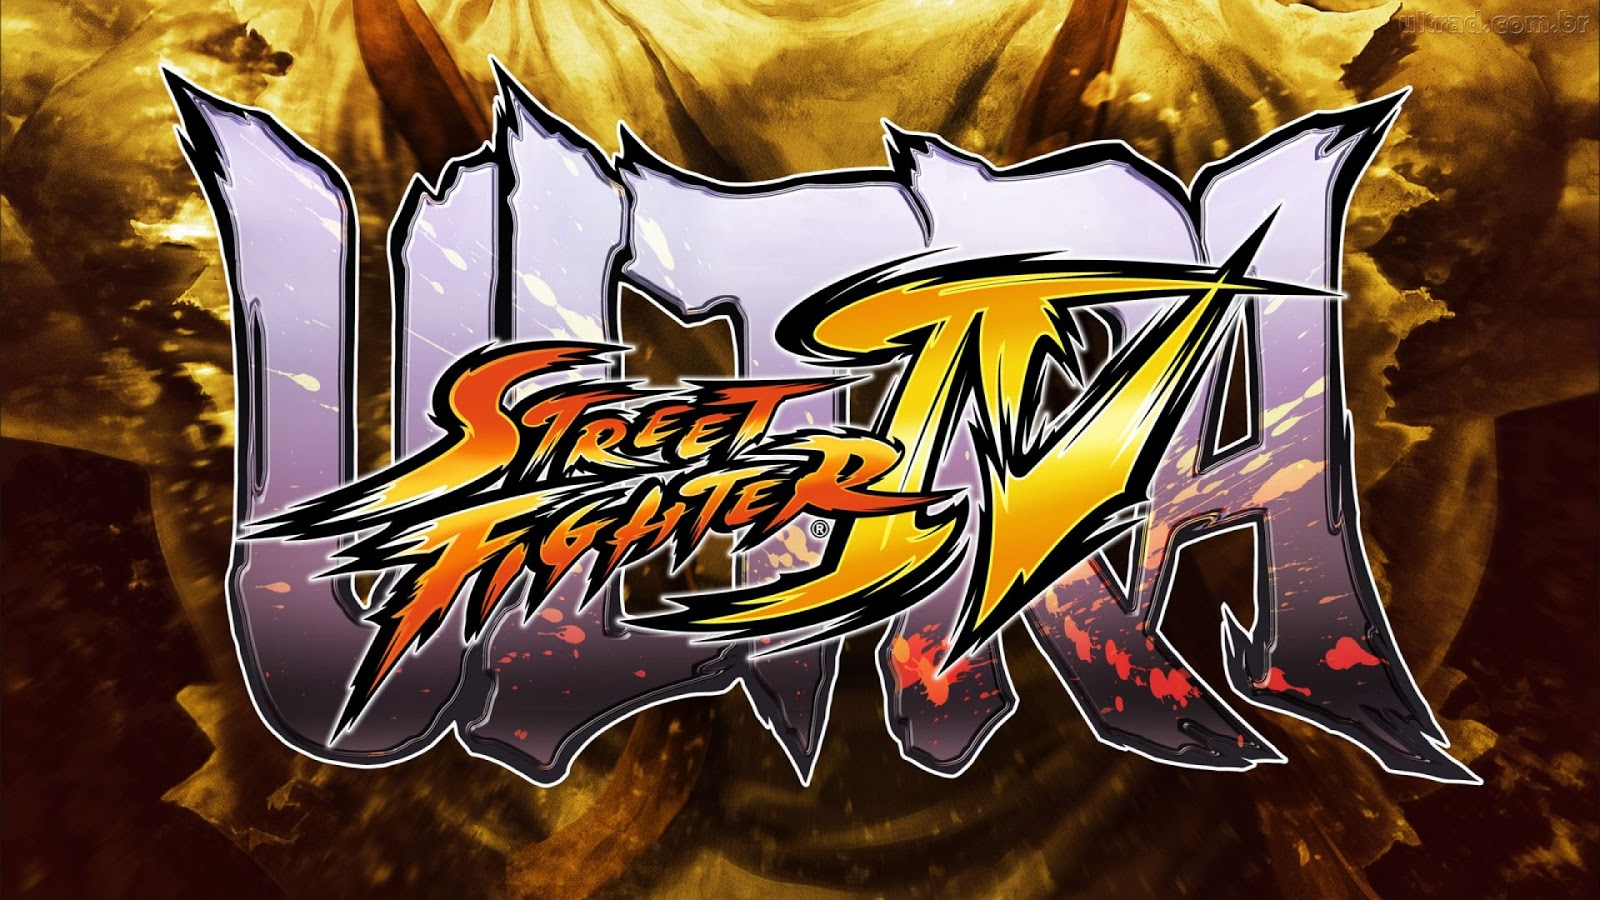 sony to roll out ultra street fighter iv ps4 patch mono live